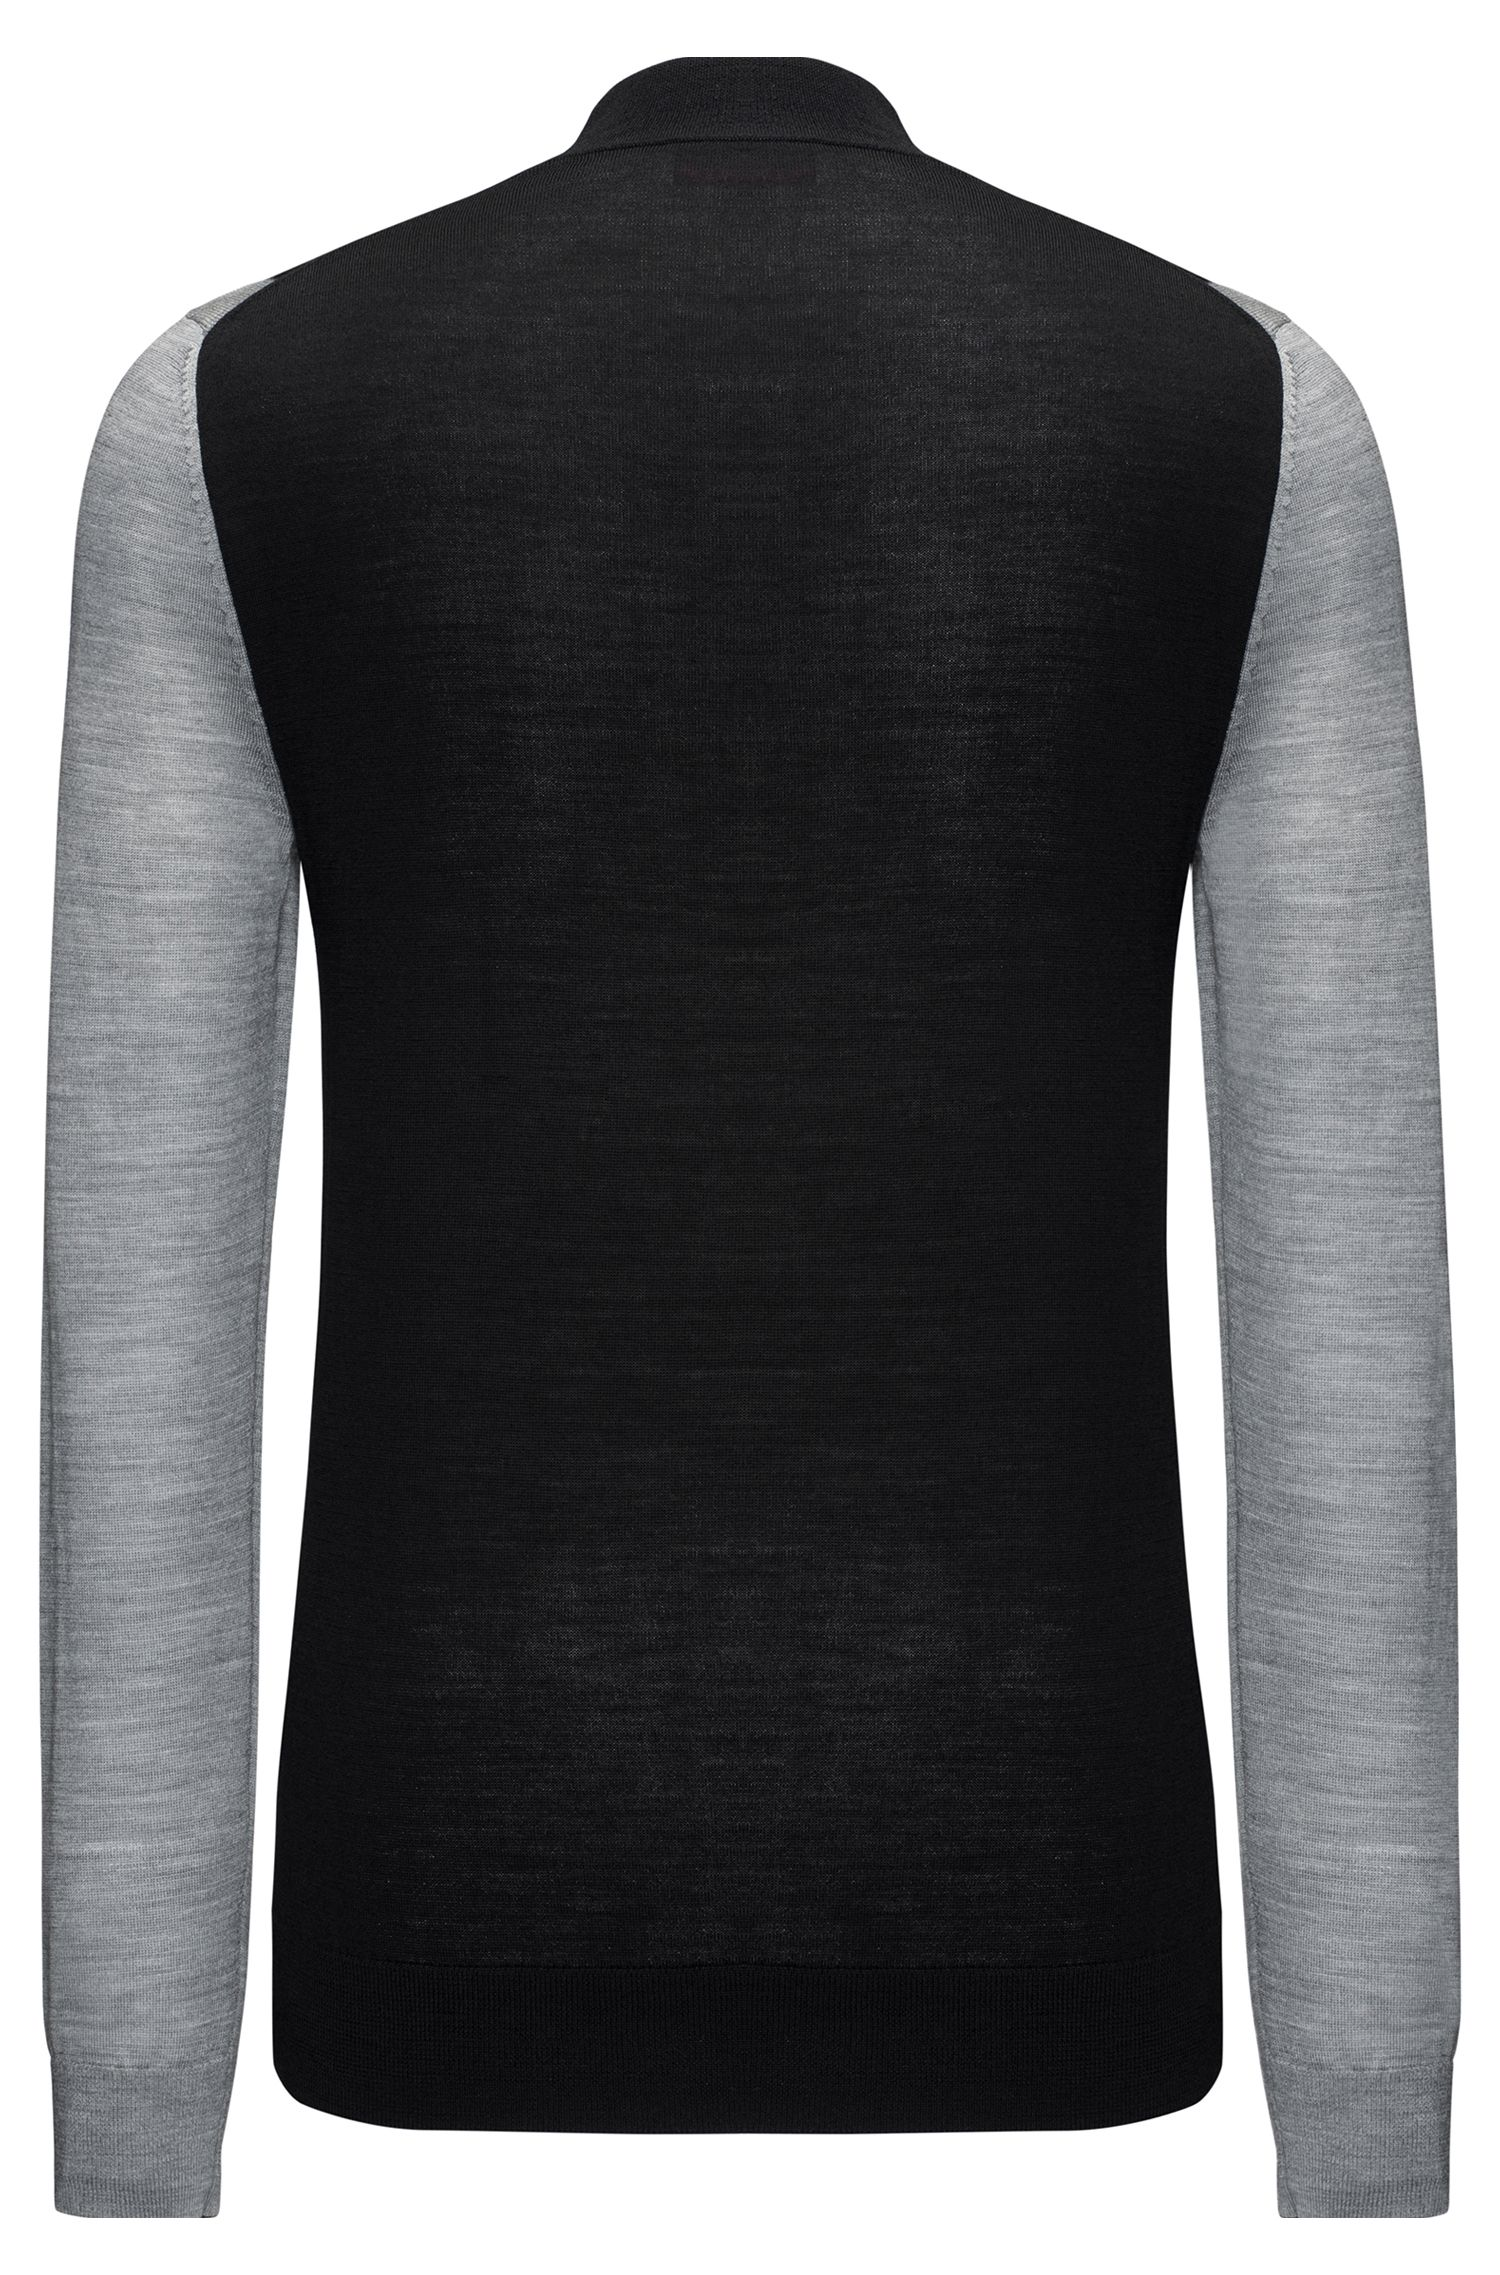 Colorblocked Stretch Virgin Wool Sweater | Seito